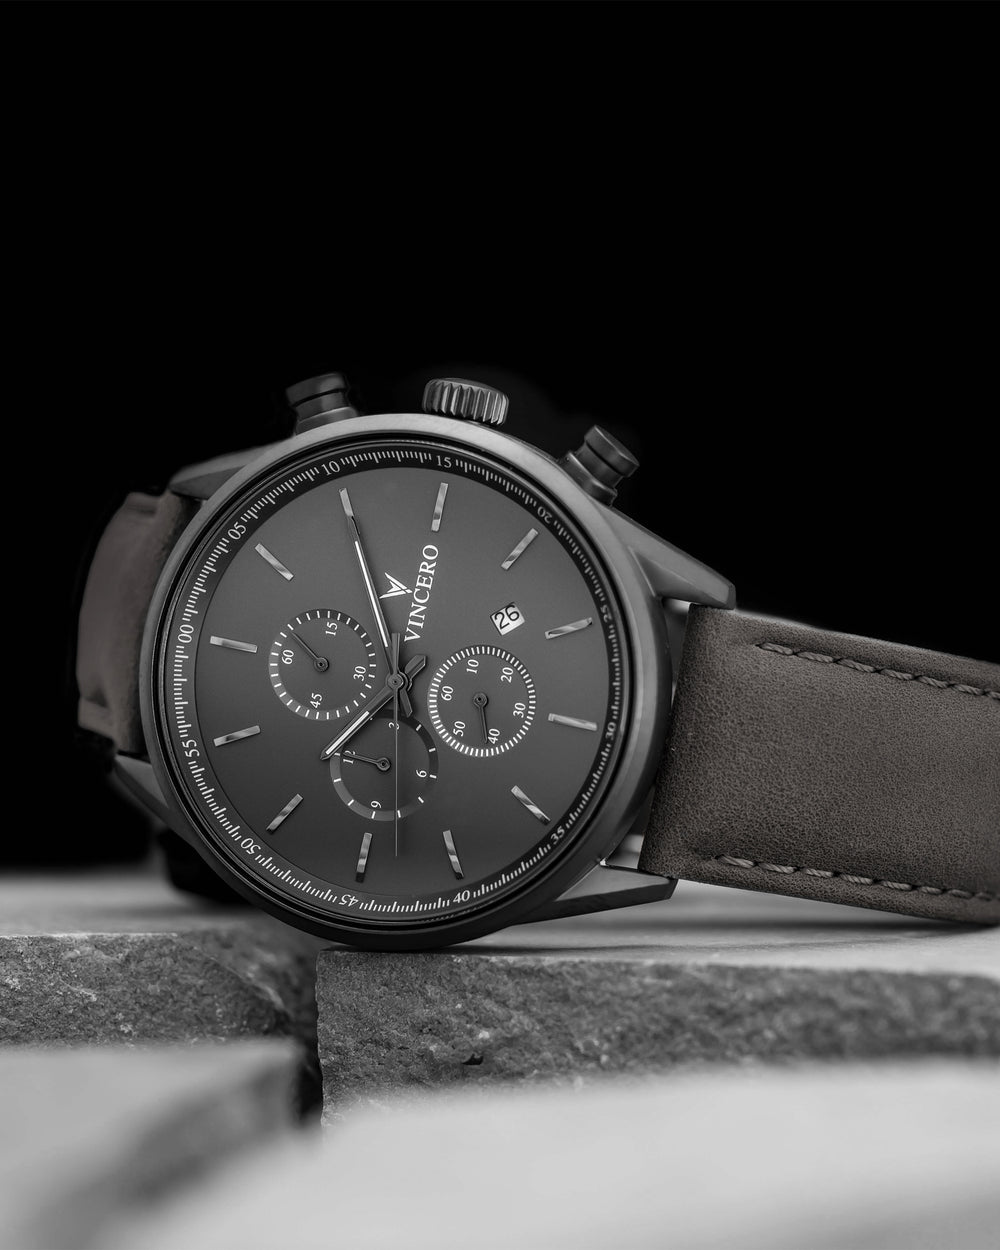 Chrono S Brown Italian Leather Strap Matte Black Watch Face Matte Black Case Clasp Black Accents